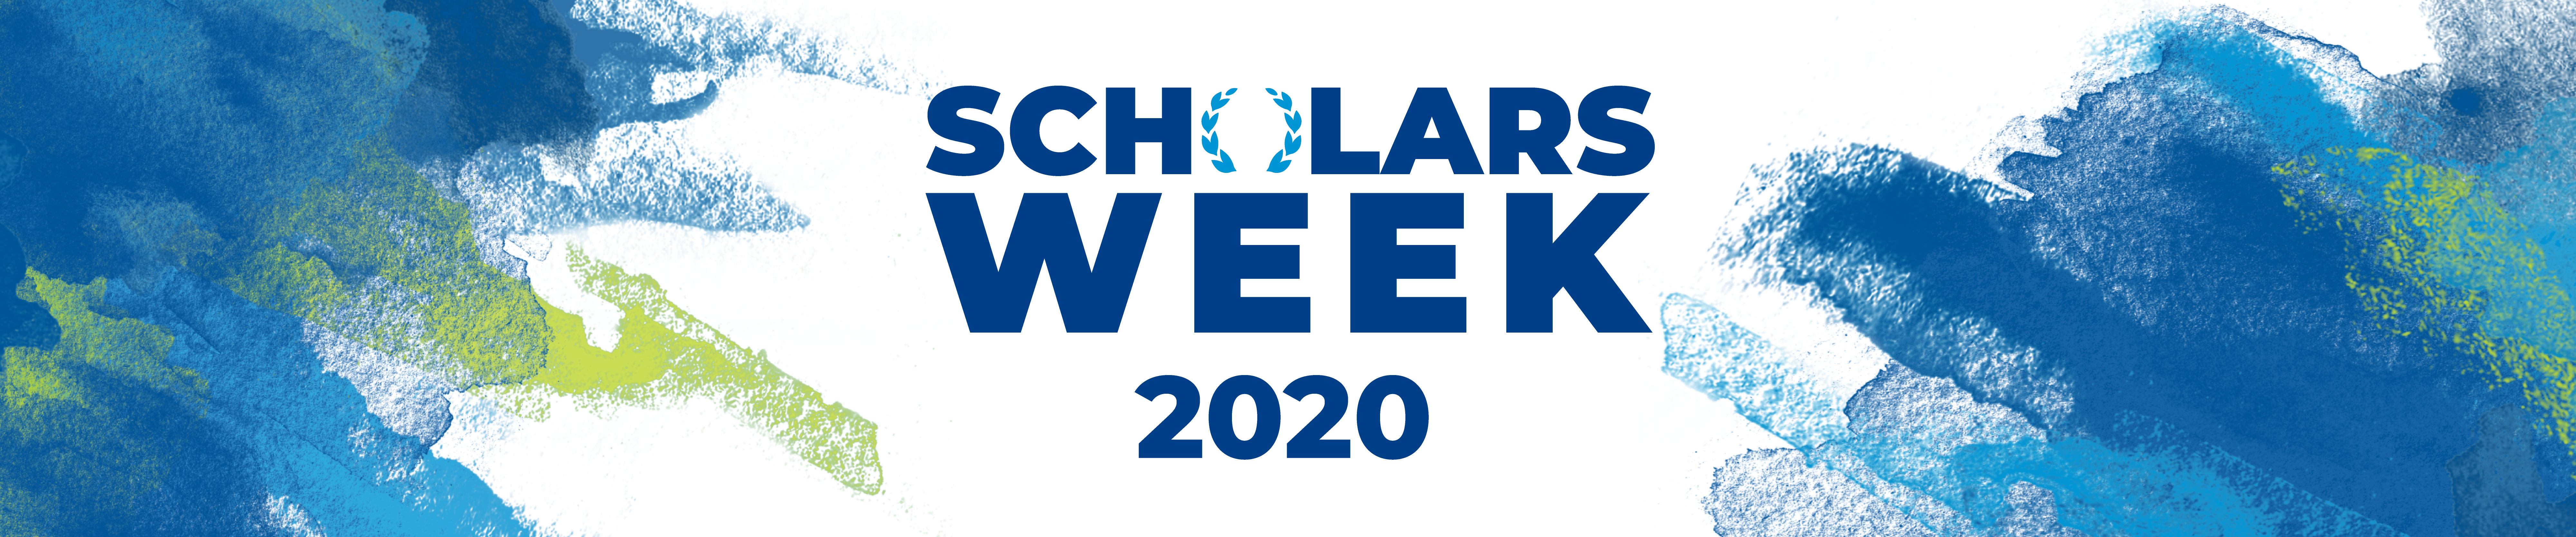 Scholars week moving online for 2020